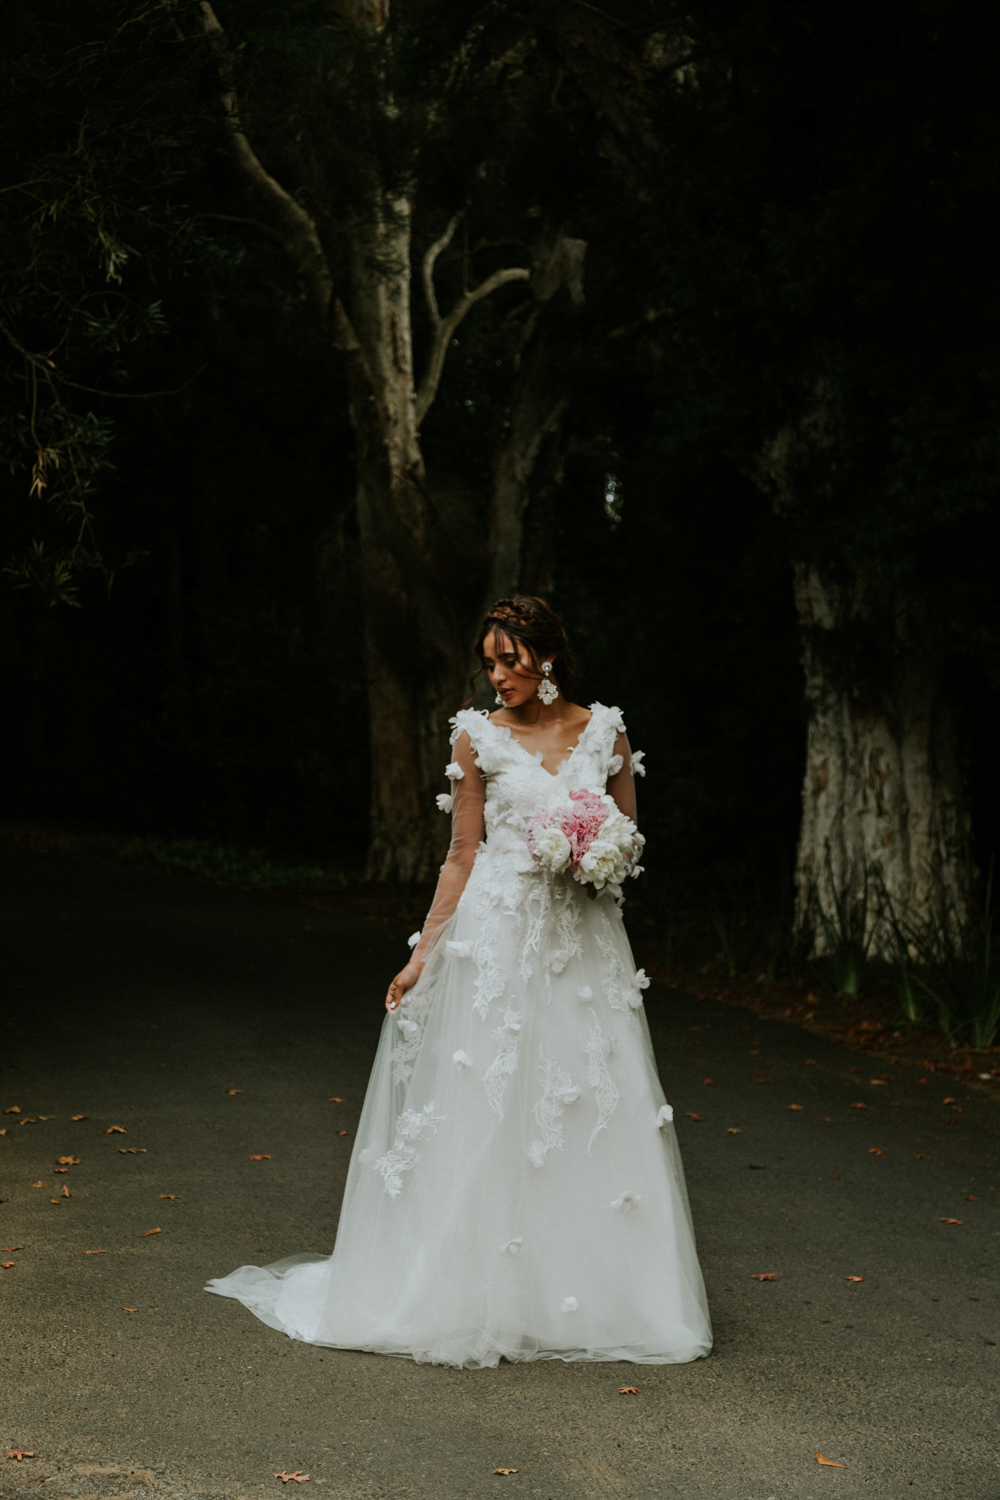 Forest Wedding Cape Town - Bianca Asher Photography-17.jpg